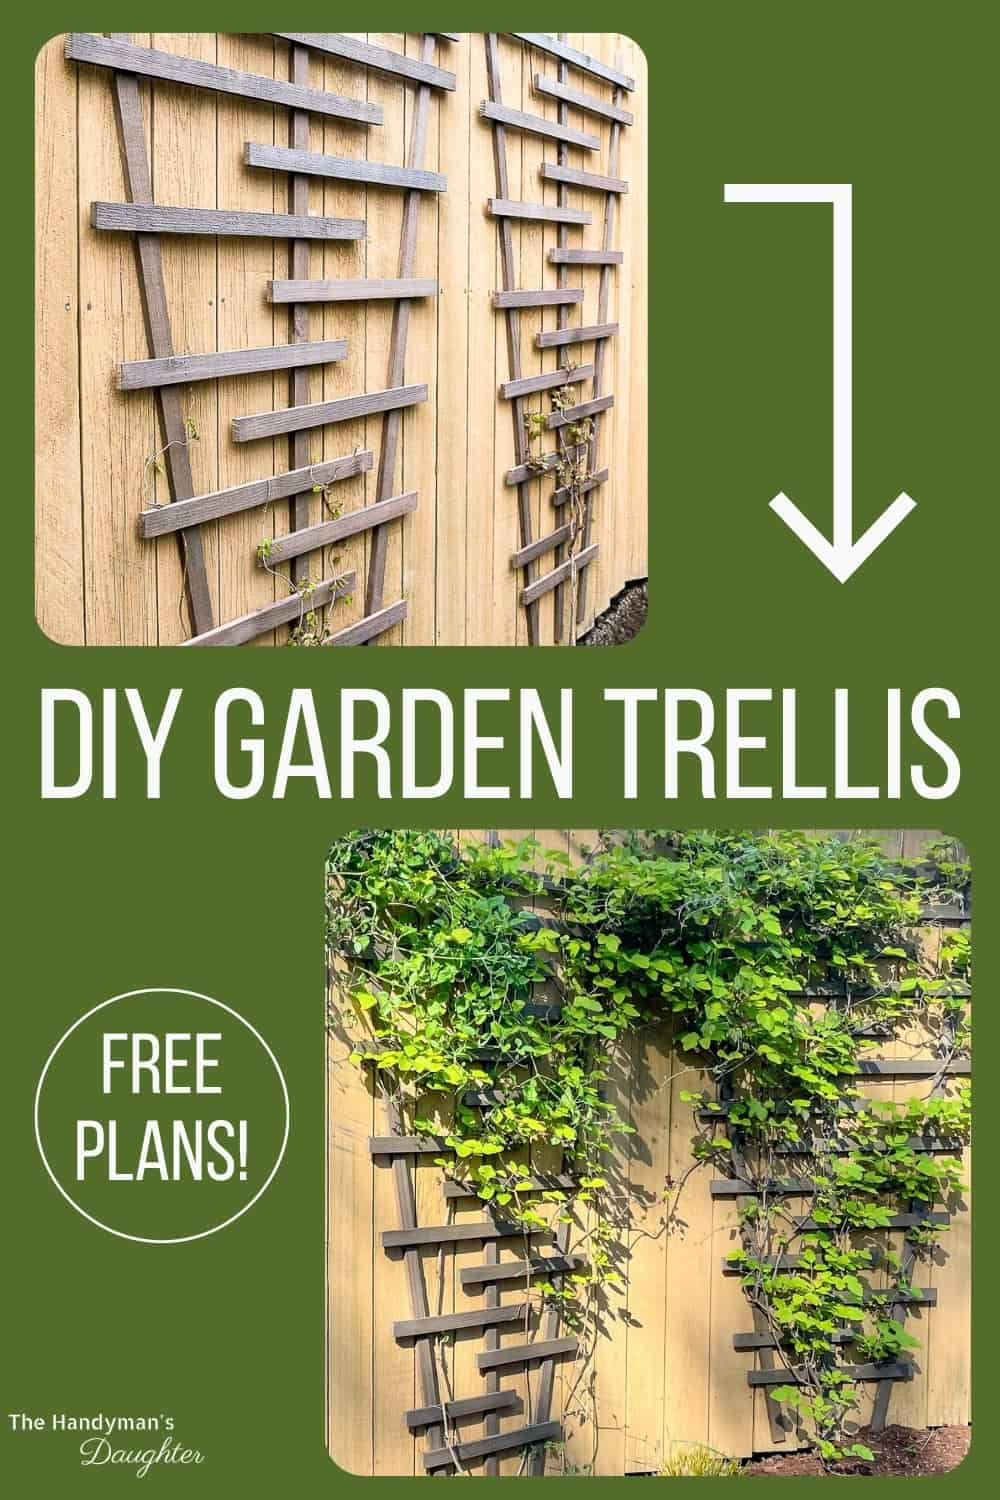 DIY garden trellis before and after